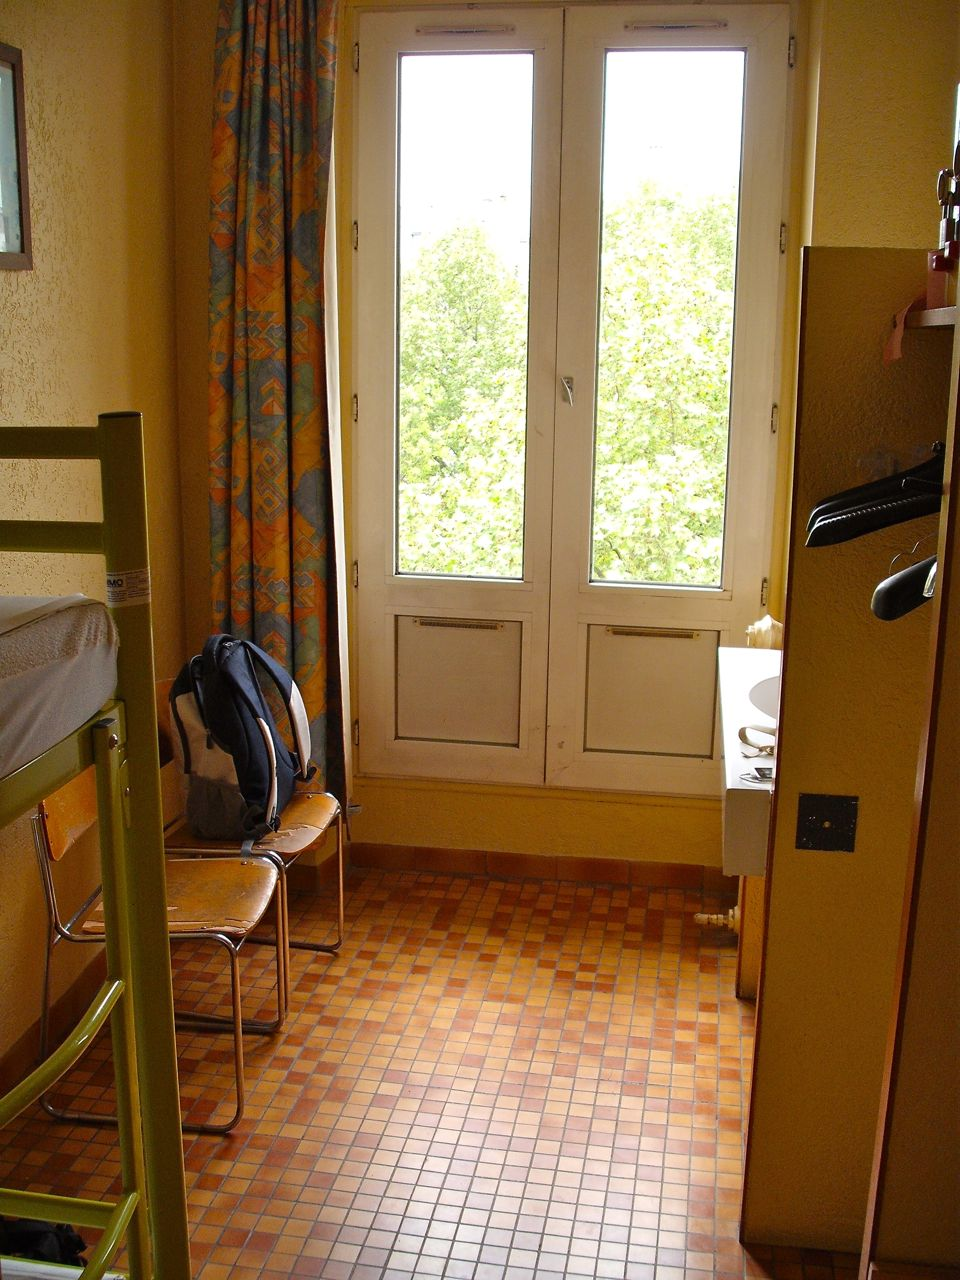 French windows in France